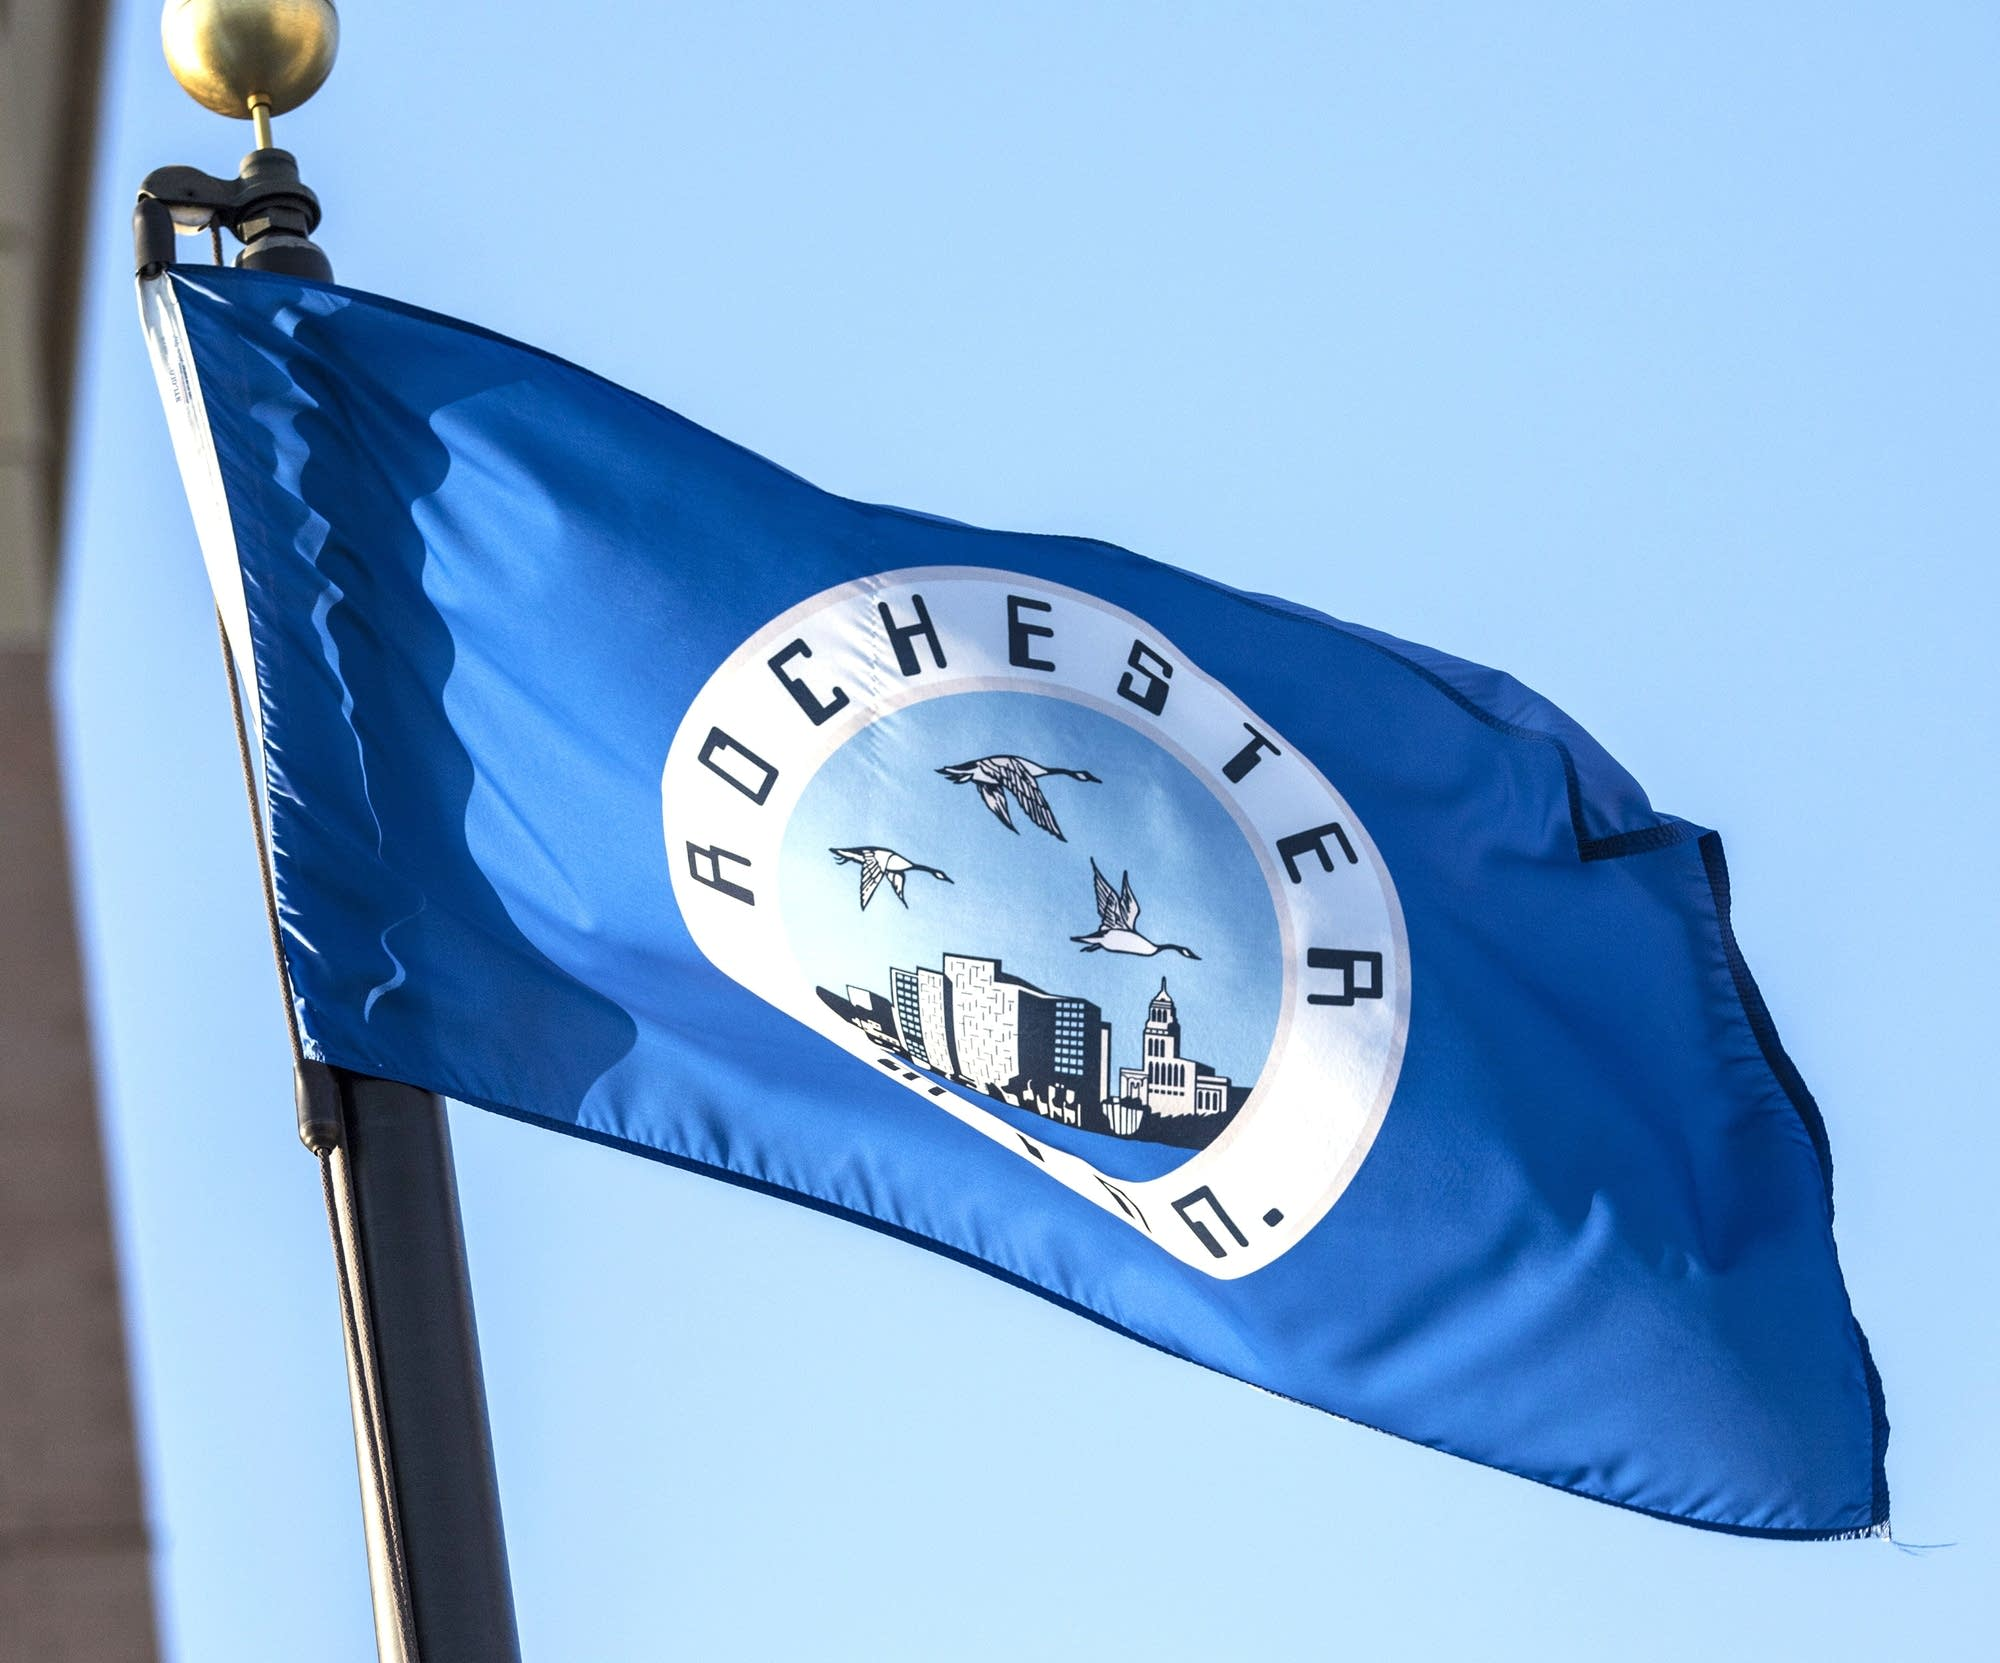 The Rochester flag flies at the City/County Government Center.